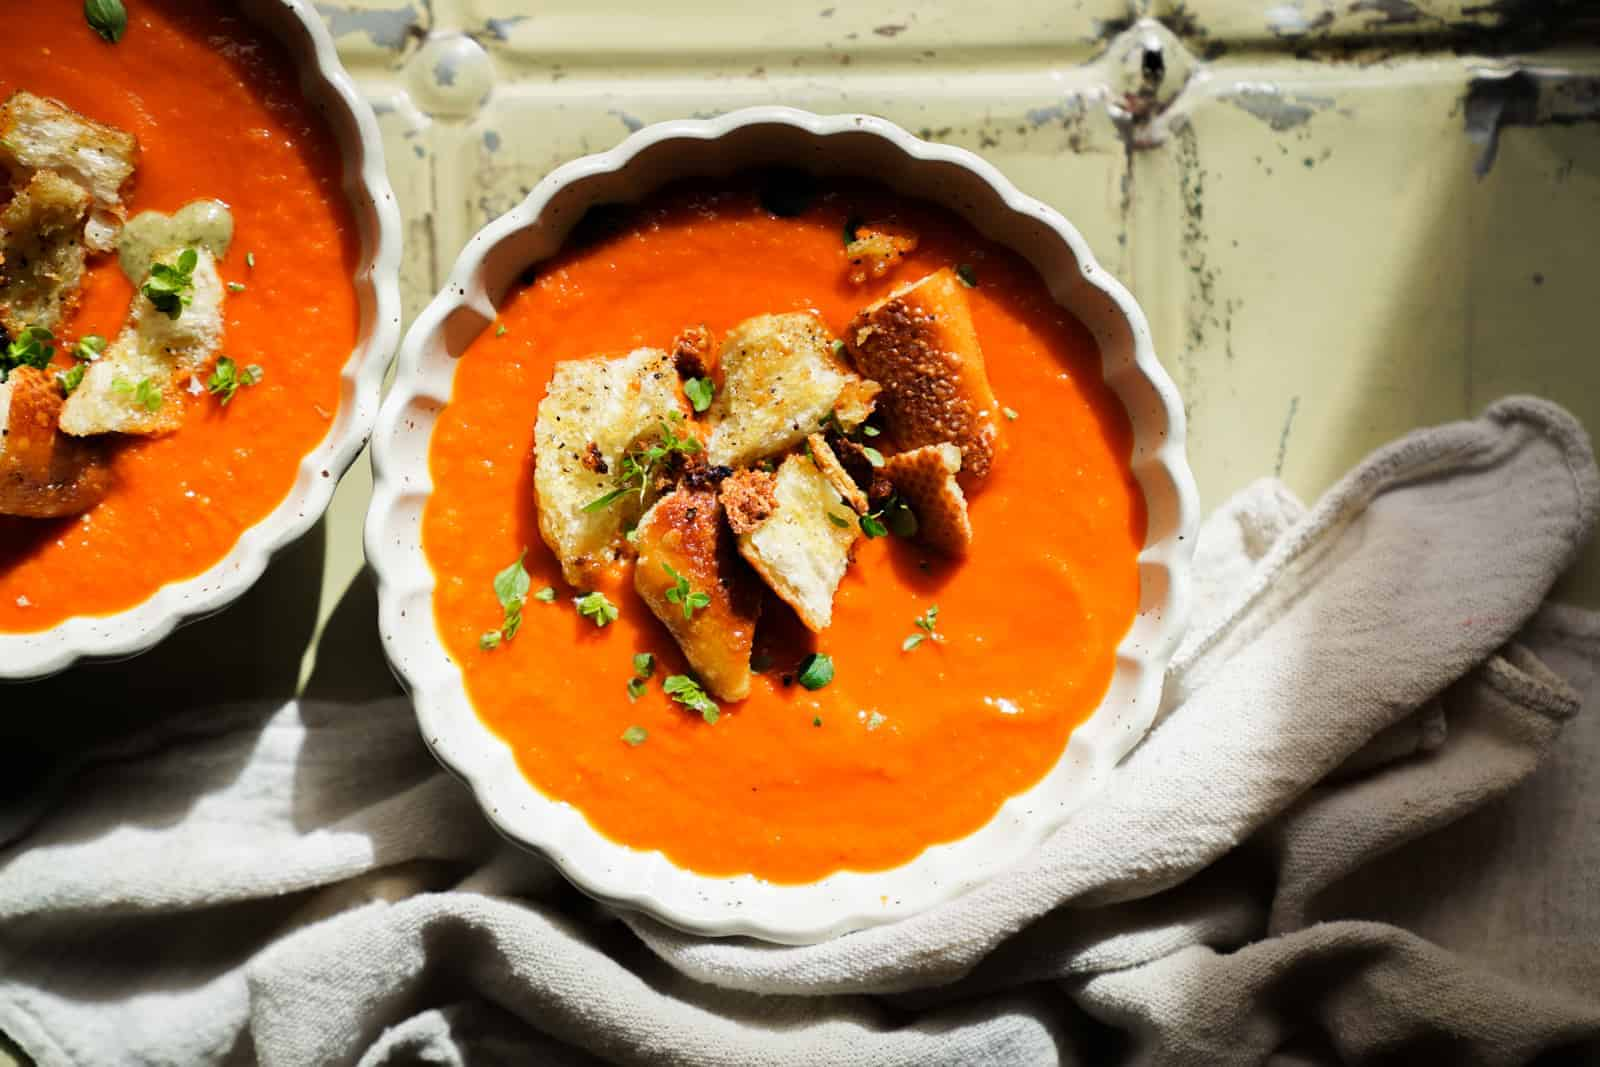 Overhead photo of Roasted Tomato Soup with garlic crotons and basil on top